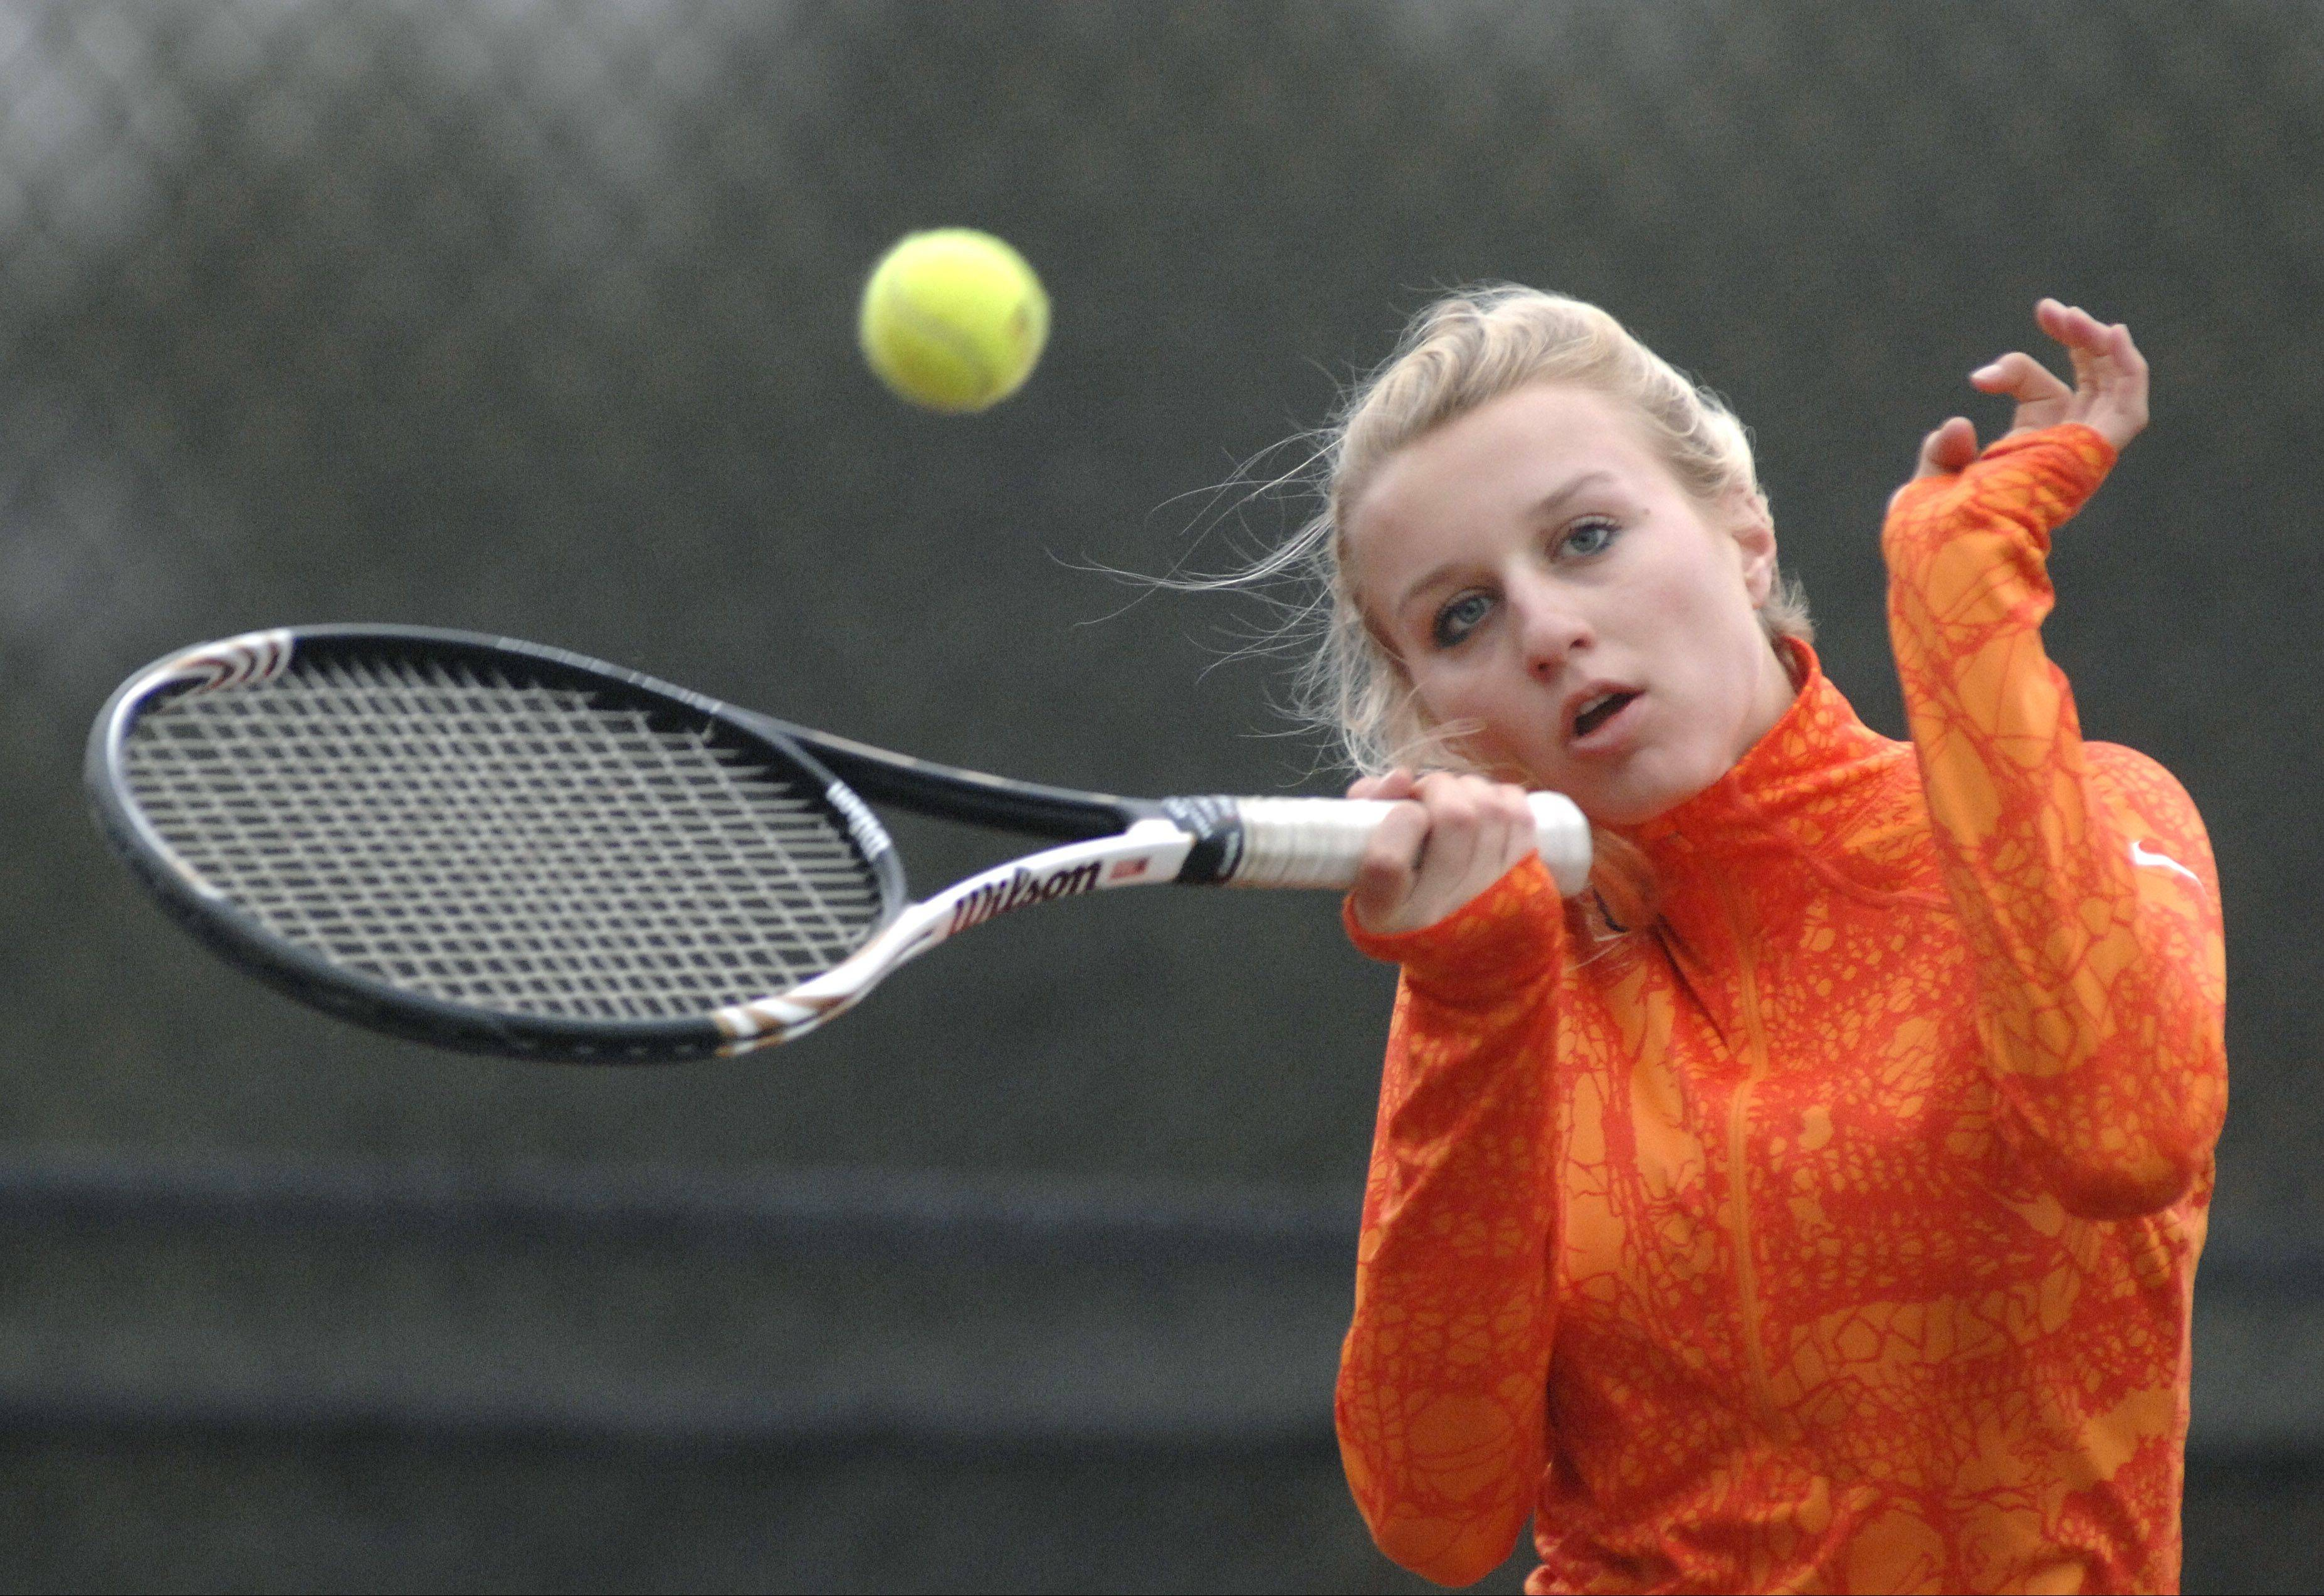 St. Charles East's Sarah Church in a singles semi-finals match in the sectional at St. Charles East on Saturday, October 13.